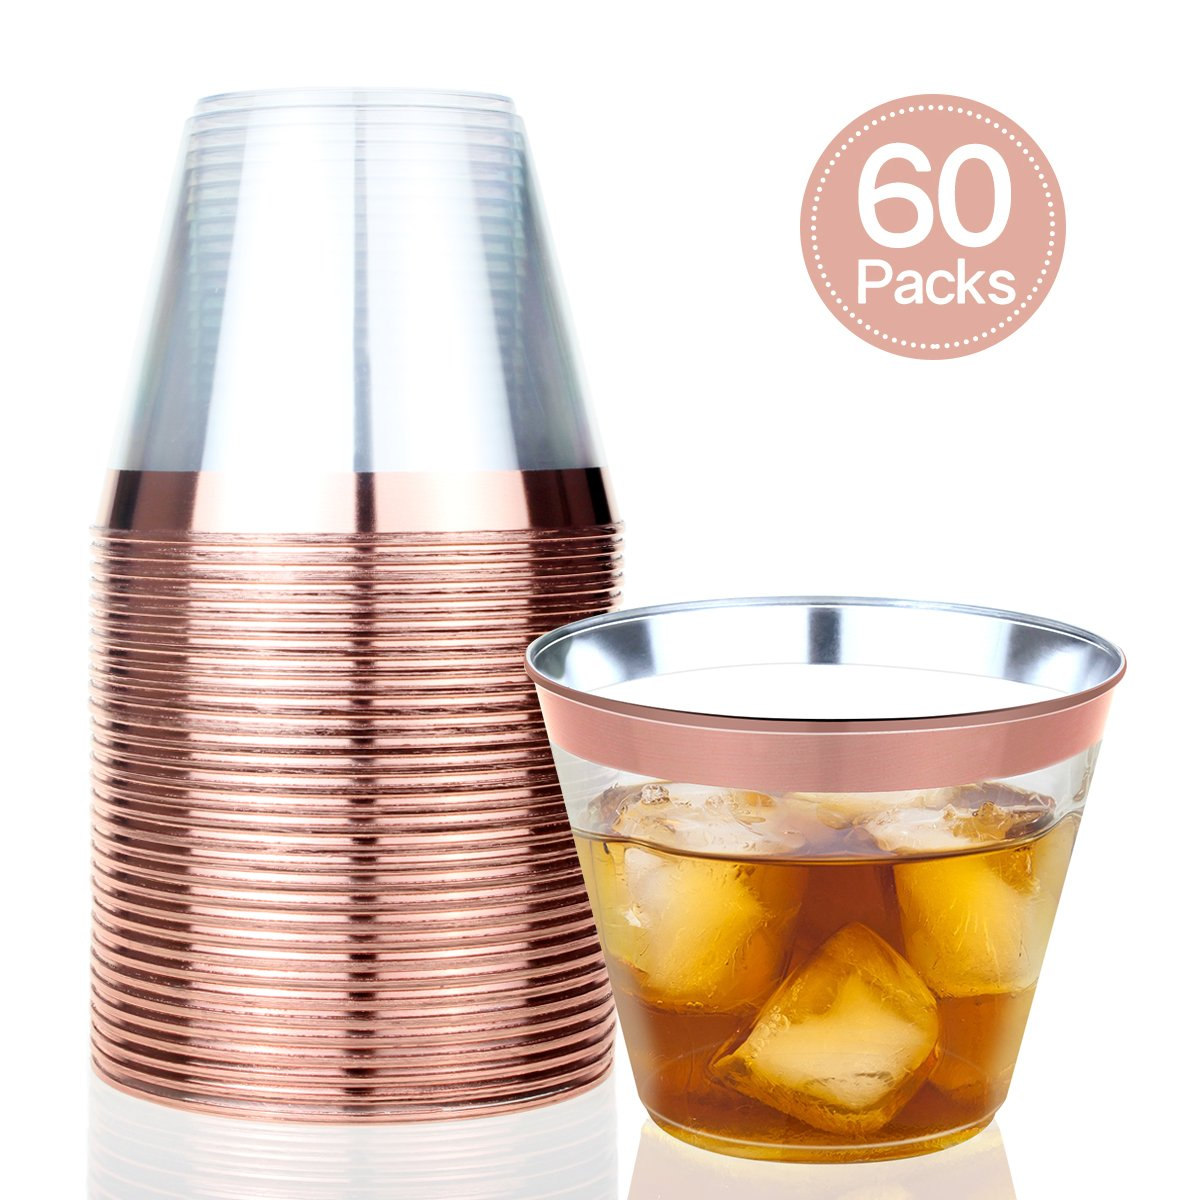 Rose Gold Plastic Cups,9 Oz Clear Plastic Cups Fashioned Tumblers Fancy Disposable Hard Party Wedding Cups Elegant Party Cups with Rose Gold Rim (60 Pack)